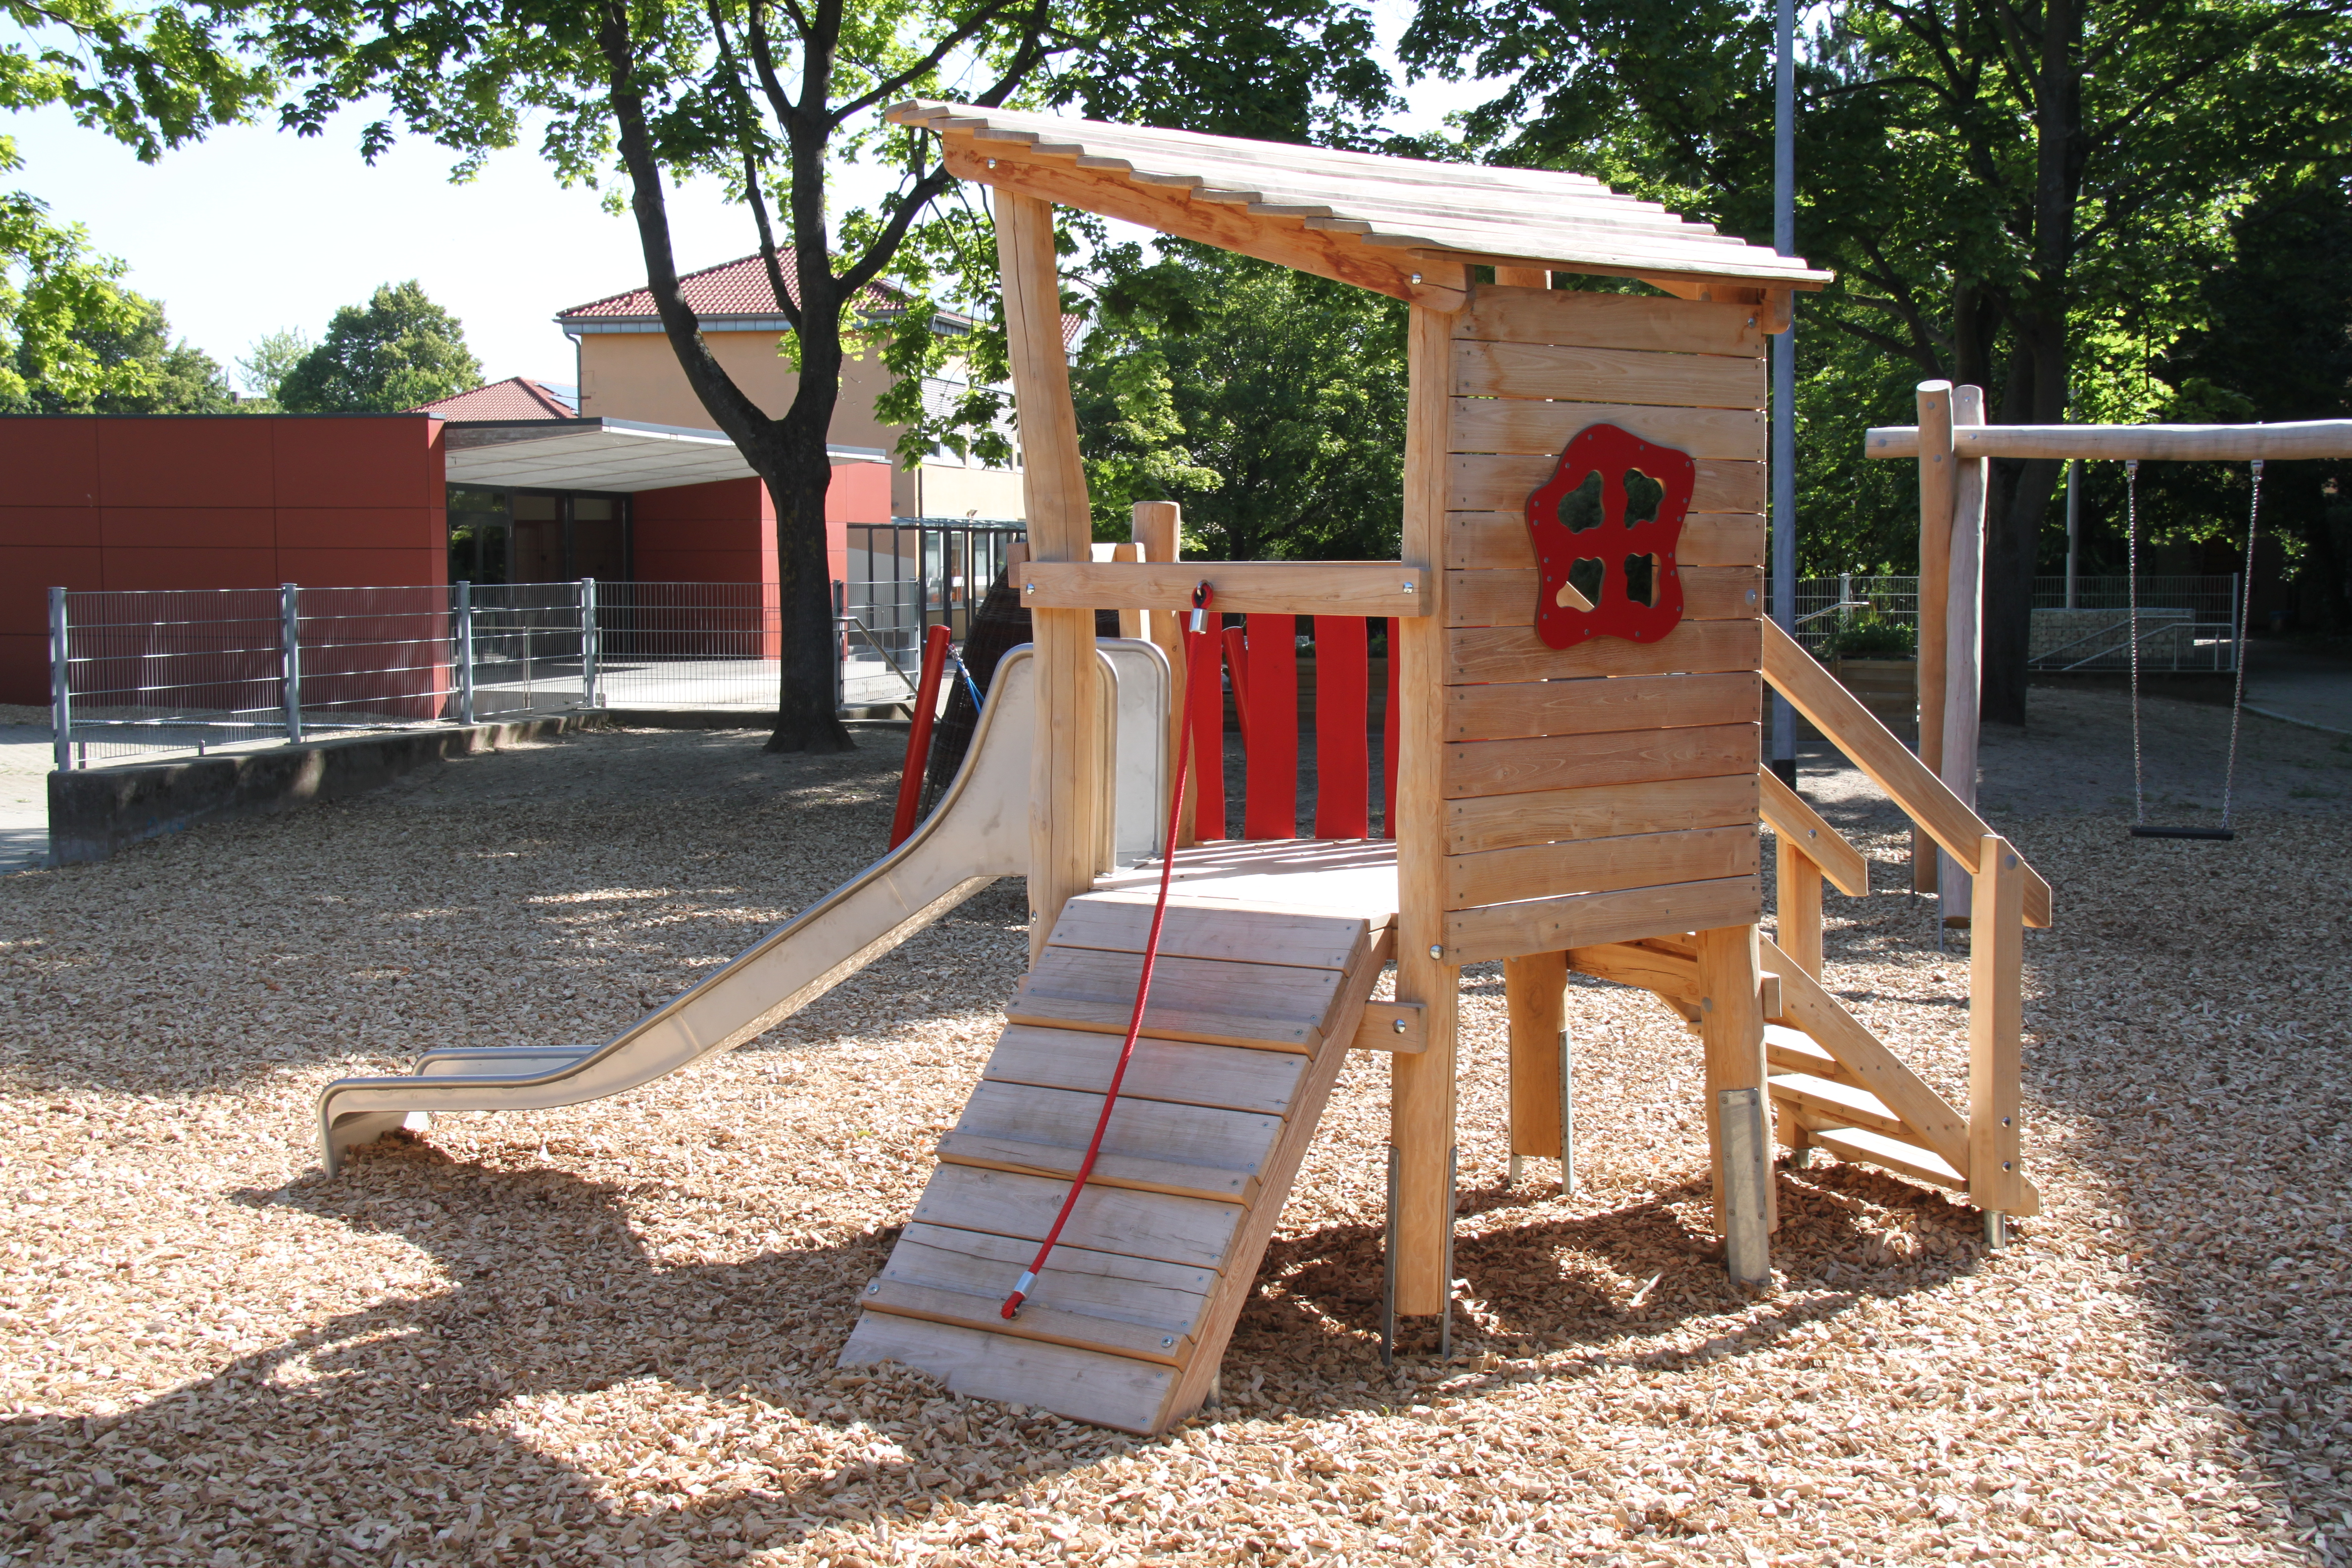 http://planer.seibel-spielgeraete.de/sites/default/files/bilder/original/_kinderhaus_kd1_0.jpg